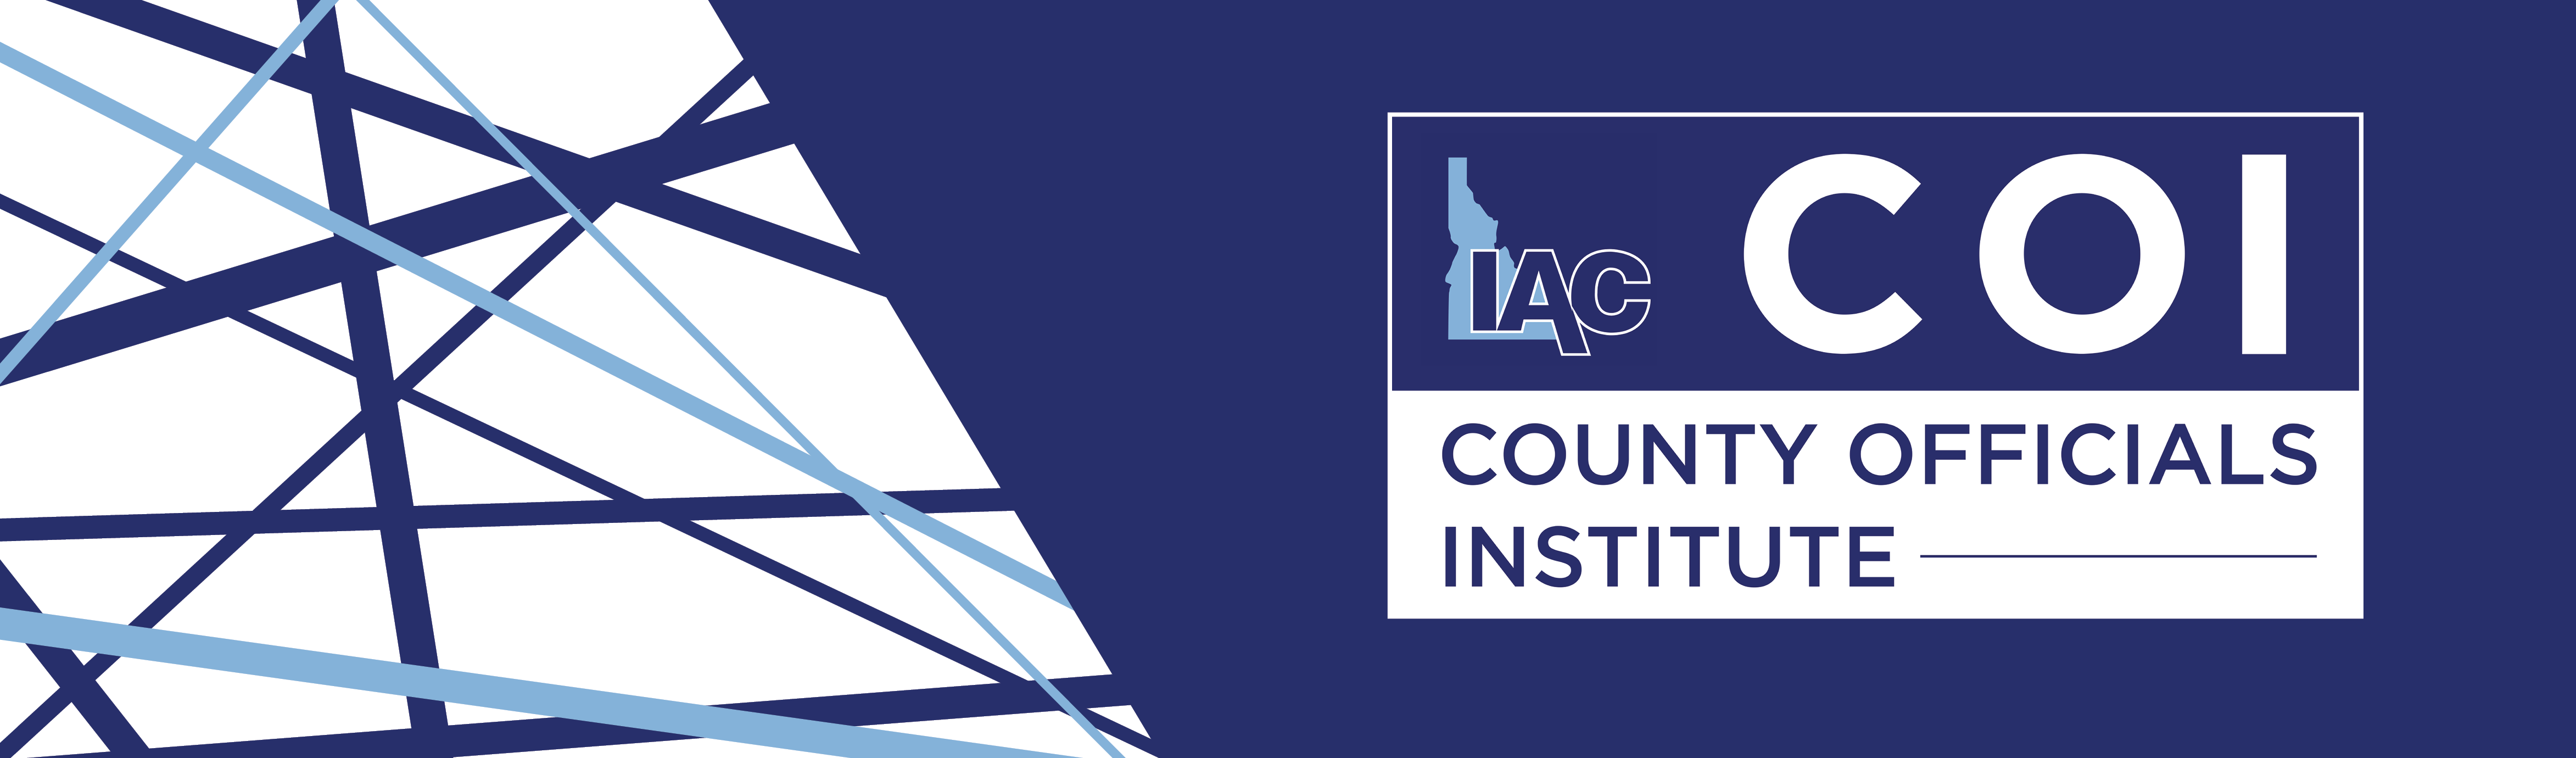 Registration now open for Fall County Officials Institute